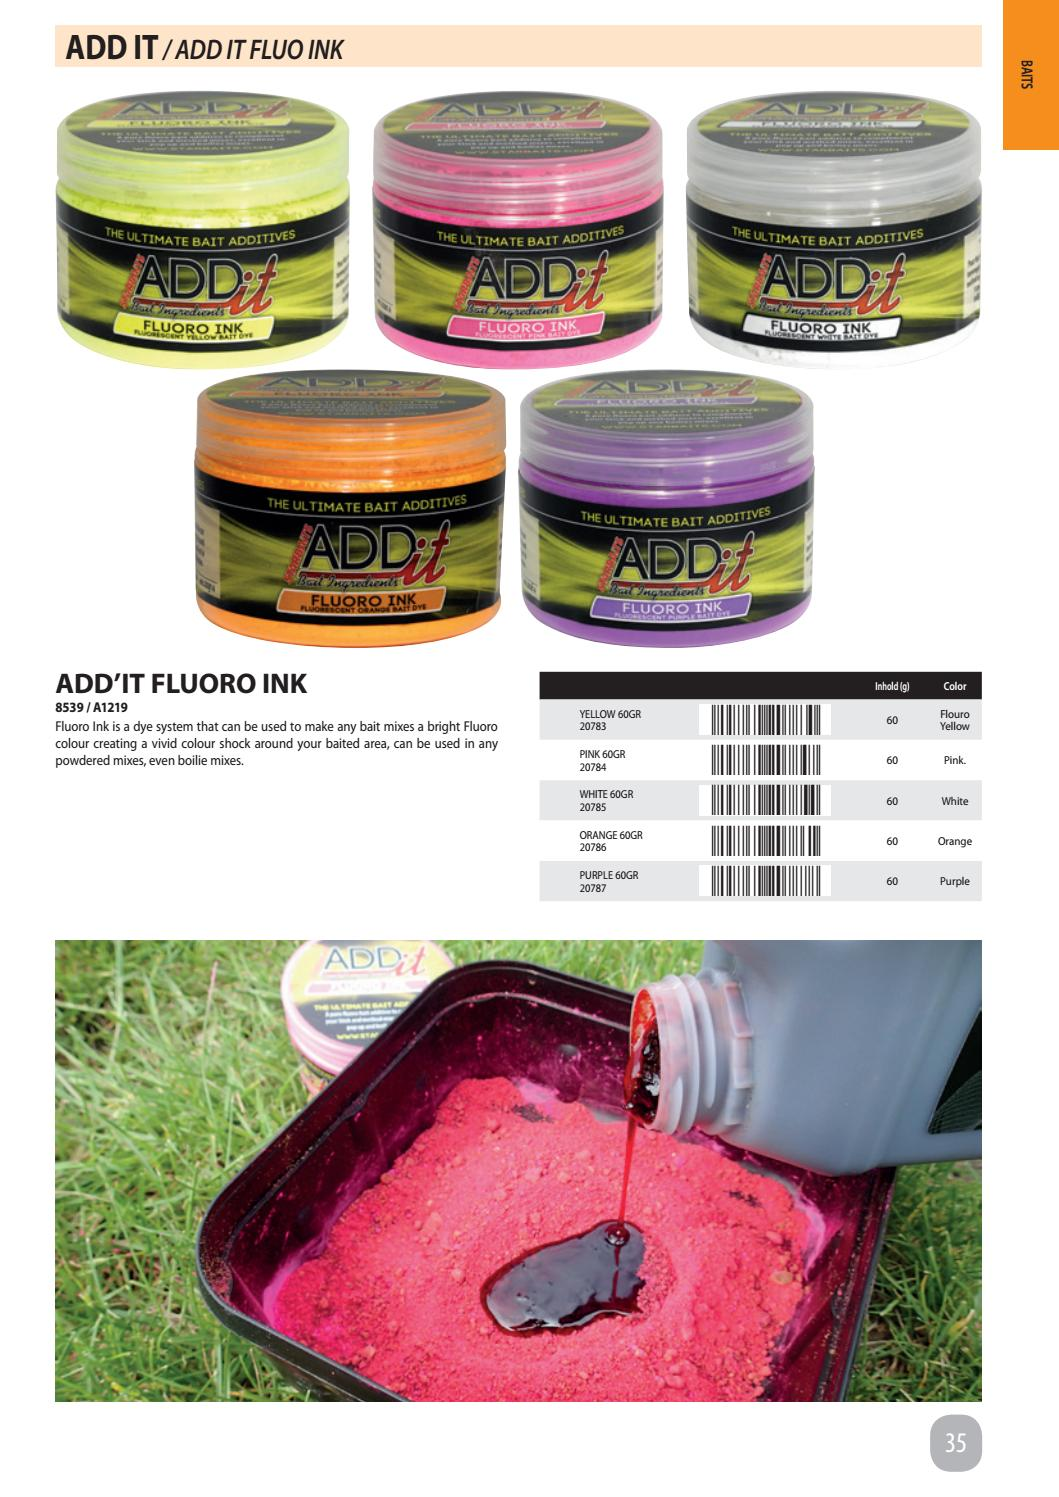 Starbaits 2018 ang by fotojakes - issuu